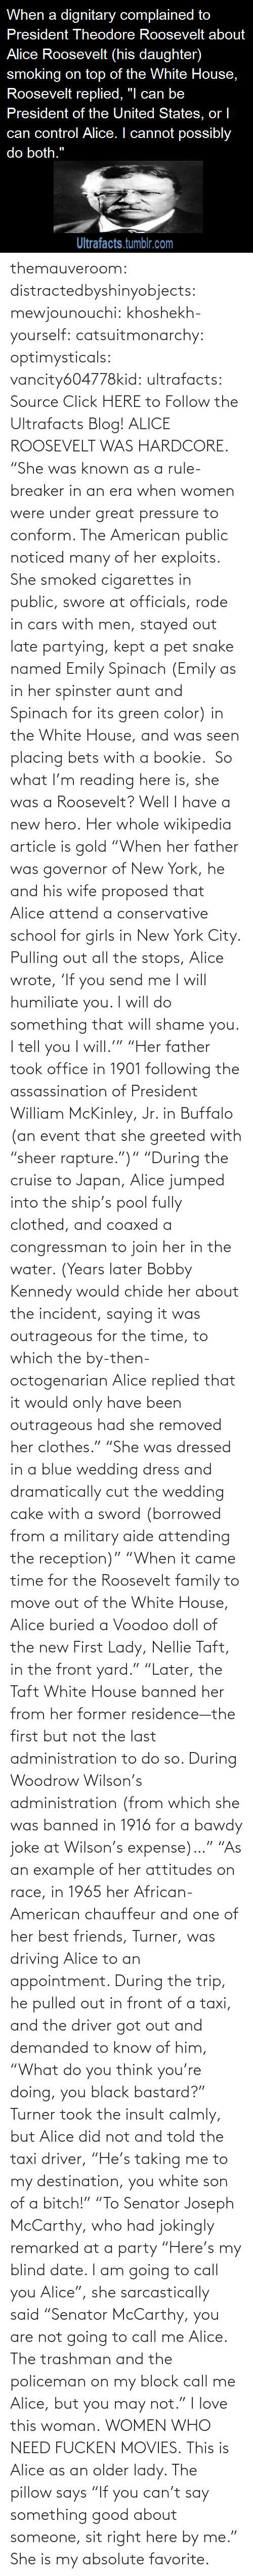 "Emily: themauveroom: distractedbyshinyobjects:  mewjounouchi:  khoshekh-yourself:  catsuitmonarchy:  optimysticals:  vancity604778kid:  ultrafacts:     Source Click HERE to Follow the Ultrafacts Blog!     ALICE ROOSEVELT WAS HARDCORE. ""She was known as a rule-breaker in an era when women were under great pressure to conform. The American public noticed many of her exploits. She smoked cigarettes in public, swore at officials, rode in cars with men, stayed out late partying, kept a pet snake named Emily Spinach (Emily as in her spinster aunt and Spinach for its green color) in the White House, and was seen placing bets with a bookie.    So what I'm reading here is, she was a Roosevelt?  Well I have a new hero.  Her whole wikipedia article is gold ""When her father was governor of New York, he and his wife proposed that Alice attend a conservative school for girls in New York City. Pulling out all the stops, Alice wrote, 'If you send me I will humiliate you. I will do something that will shame you. I tell you I will.'"" ""Her father took office in 1901 following the assassination of President William McKinley, Jr. in Buffalo (an event that she greeted with ""sheer rapture."")"" ""During the cruise to Japan, Alice jumped into the ship's pool fully clothed, and coaxed a congressman to join her in the water. (Years later Bobby Kennedy would chide her about the incident, saying it was outrageous for the time, to which the by-then-octogenarian Alice replied that it would only have been outrageous had she removed her clothes."" ""She was dressed in a blue wedding dress and dramatically cut the wedding cake with a sword (borrowed from a military aide attending the reception)"" ""When it came time for the Roosevelt family to move out of the White House, Alice buried a Voodoo doll of the new First Lady, Nellie Taft, in the front yard."" ""Later, the Taft White House banned her from her former residence—the first but not the last administration to do so. During Woodrow Wilson's administration (from which she was banned in 1916 for a bawdy joke at Wilson's expense)…"" ""As an example of her attitudes on race, in 1965 her African-American chauffeur and one of her best friends, Turner, was driving Alice to an appointment. During the trip, he pulled out in front of a taxi, and the driver got out and demanded to know of him, ""What do you think you're doing, you black bastard?"" Turner took the insult calmly, but Alice did not and told the taxi driver, ""He's taking me to my destination, you white son of a bitch!"" ""To Senator Joseph McCarthy, who had jokingly remarked at a party ""Here's my blind date. I am going to call you Alice"", she sarcastically said ""Senator McCarthy, you are not going to call me Alice. The trashman and the policeman on my block call me Alice, but you may not.""  I love this woman.  WOMEN WHO NEED FUCKEN MOVIES.   This is Alice as an older lady. The pillow says ""If you can't say something good about someone, sit right here by me.""  She is my absolute favorite."